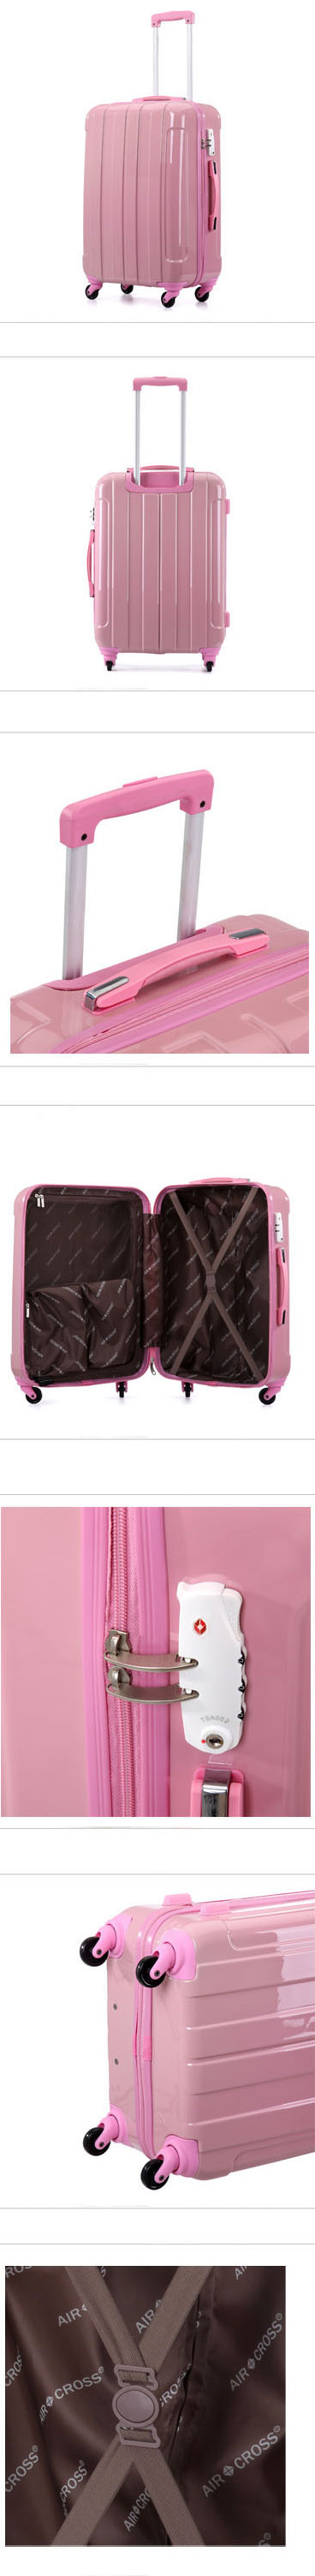 Aircross Luggage